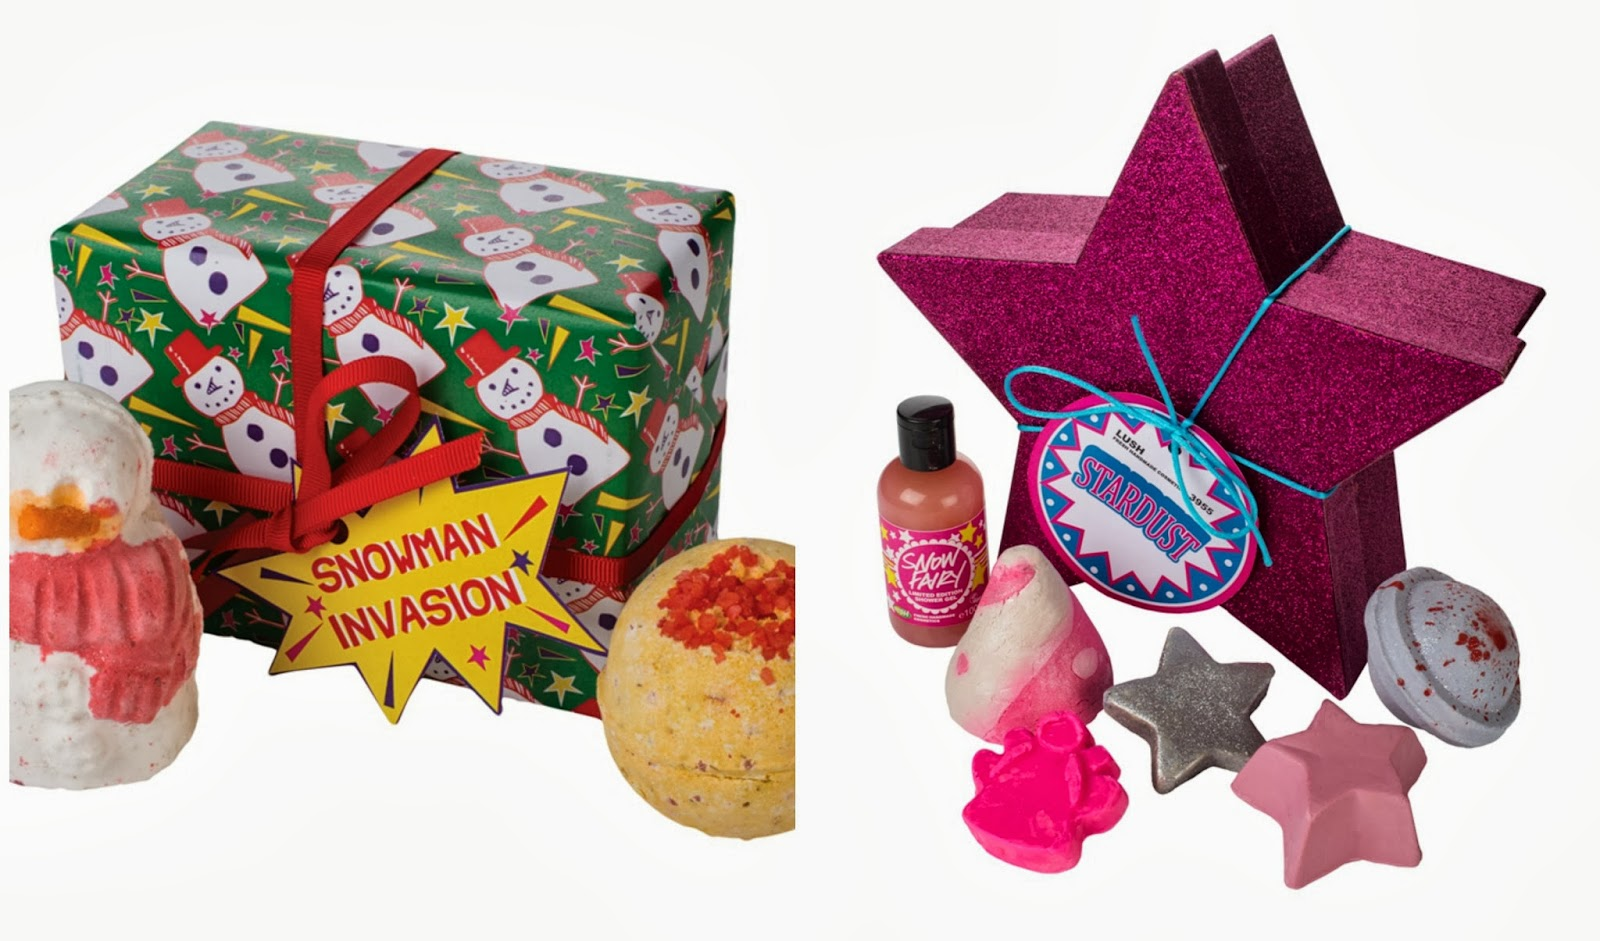 Lush Christmas Gift Sets 2013 | The Sunday Girl